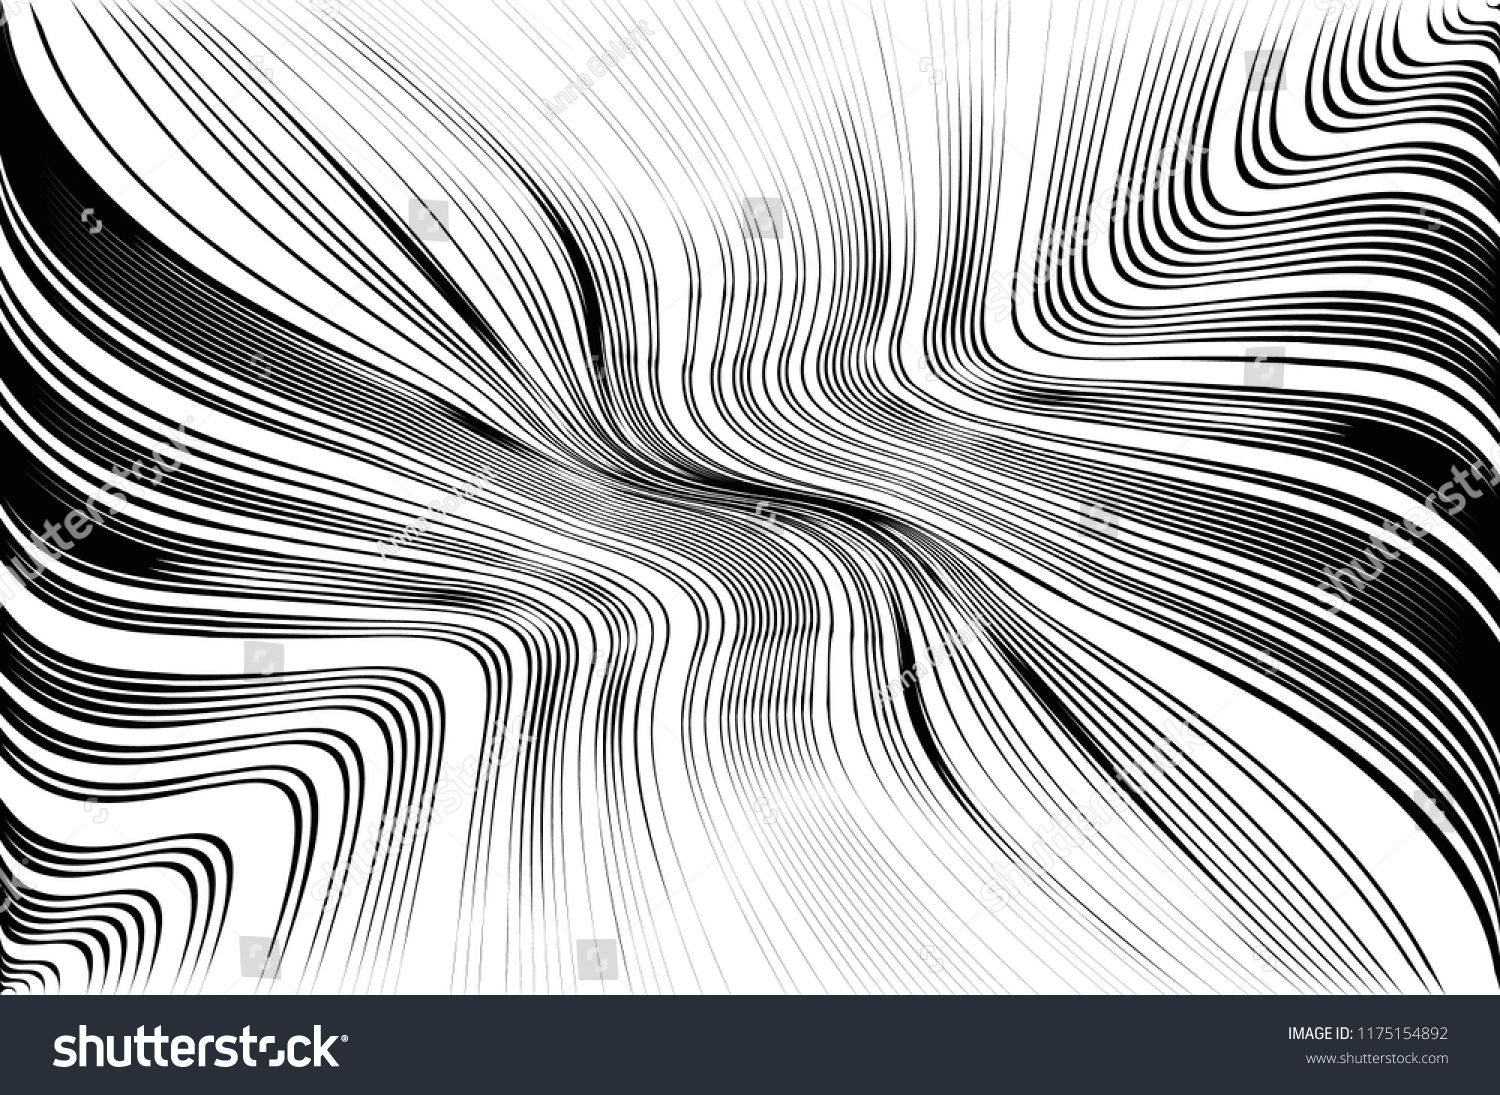 Abstract Pattern Texture With Wavy Curves Lines Optical Art Background Wave Design Black And White Digital Art Background Wave Design Vector Illustration